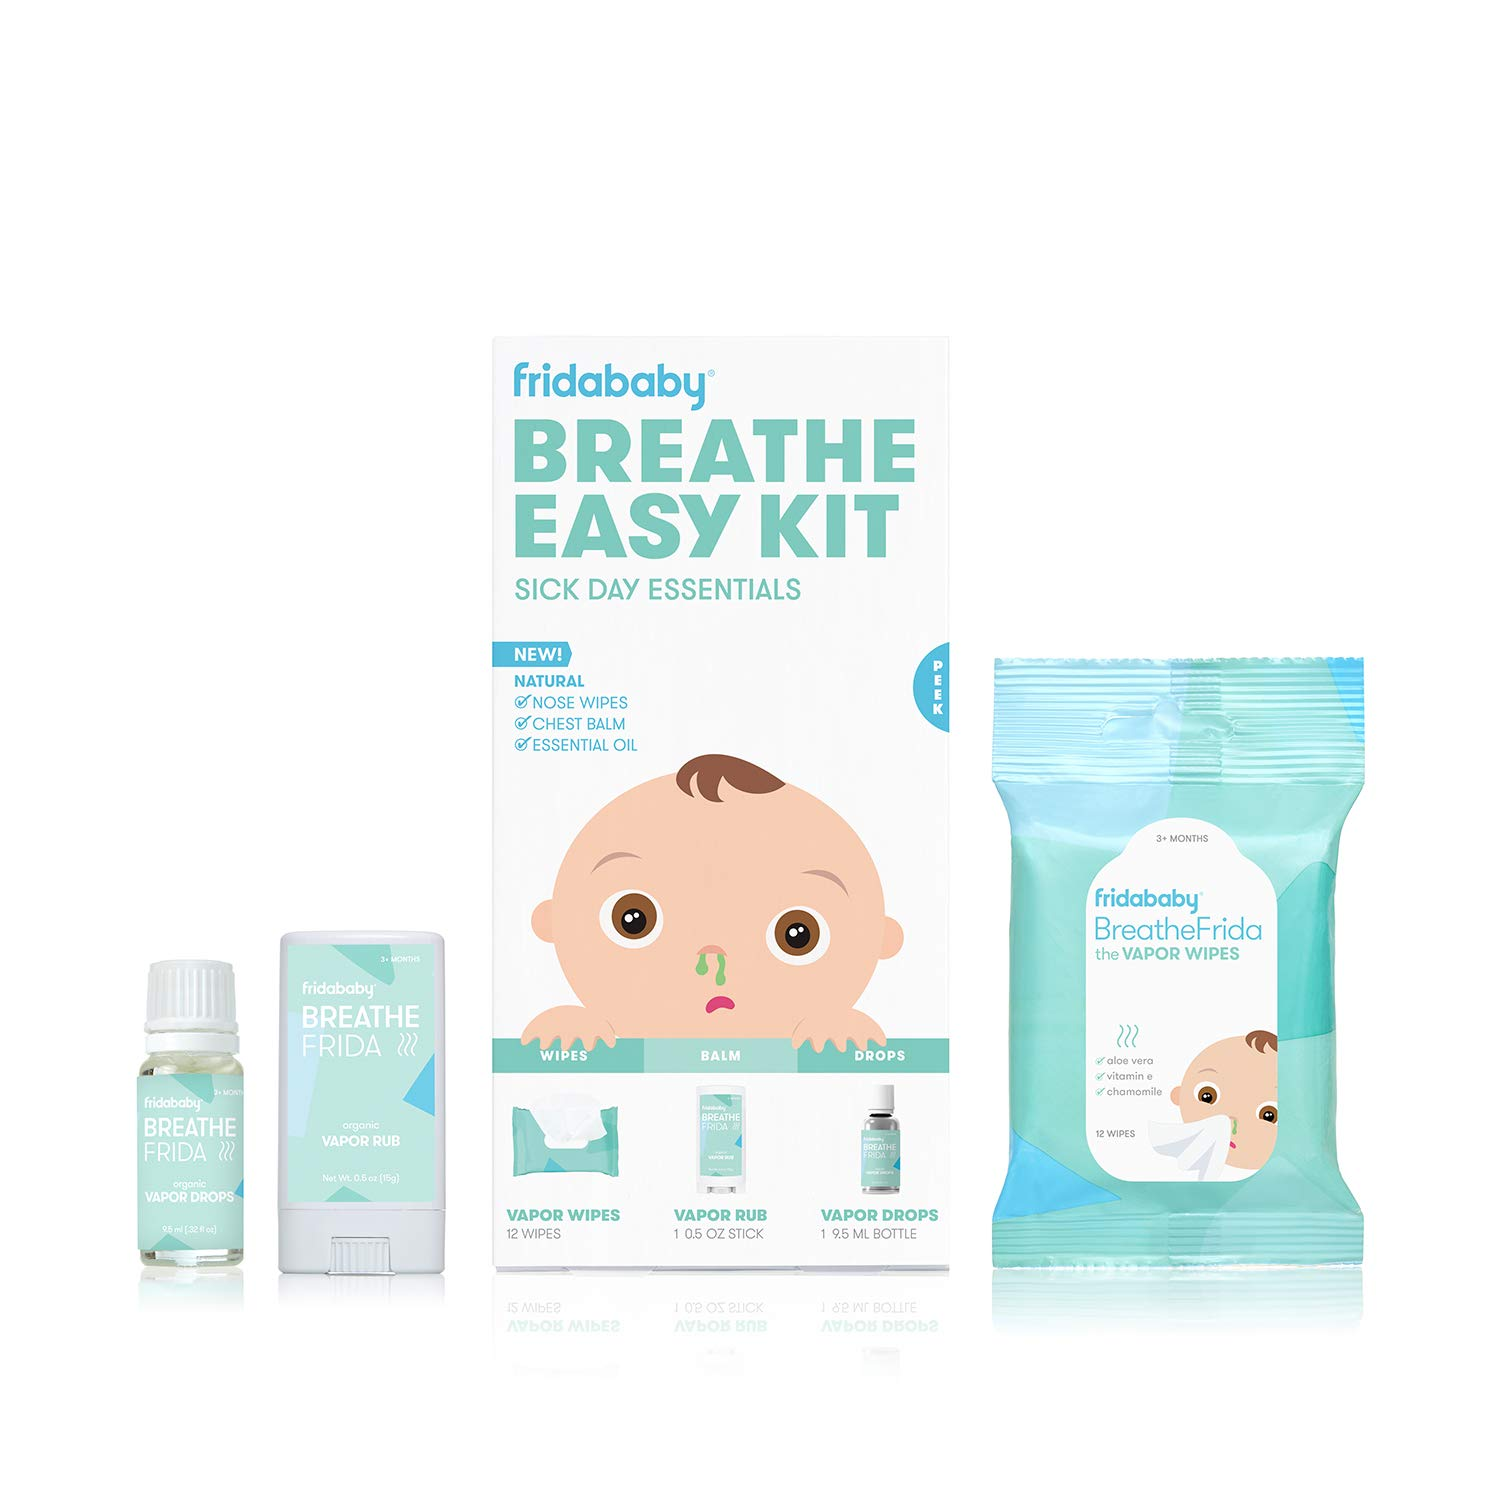 Baby and Toddler Breathe Easy Kit Sick Day Essentials by Fridababy- A Must-Have Set Includes Natural Nose and Chest Wipes, Organic No-Mess Chest Balm, and Organic Essential Oil for Bath or Diffuser